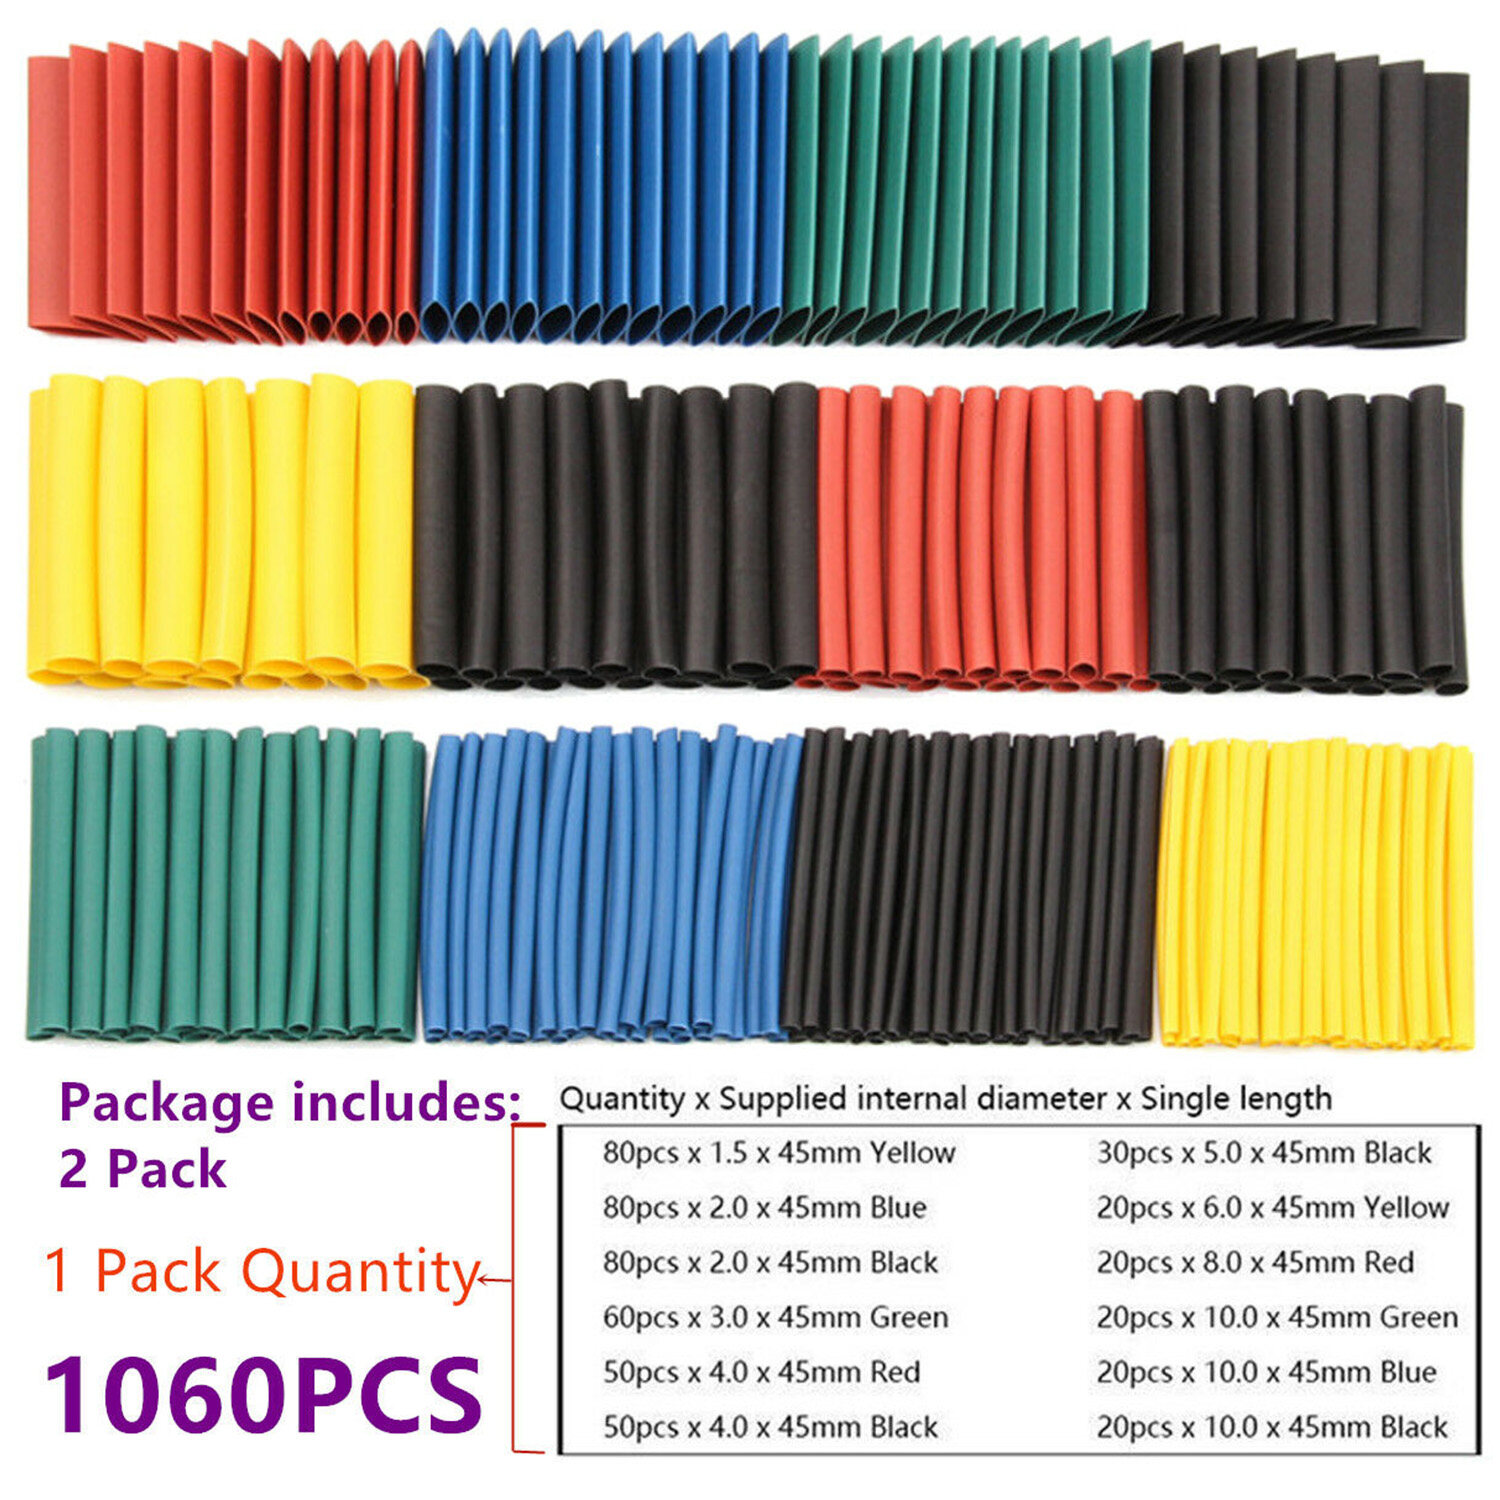 1060PCS 2:1 Electric Insulation Heat Shrink Tubing Tubes Wrap Sleeve Sleeving Set for Data Line Cables Protection Connection Daily Repairs